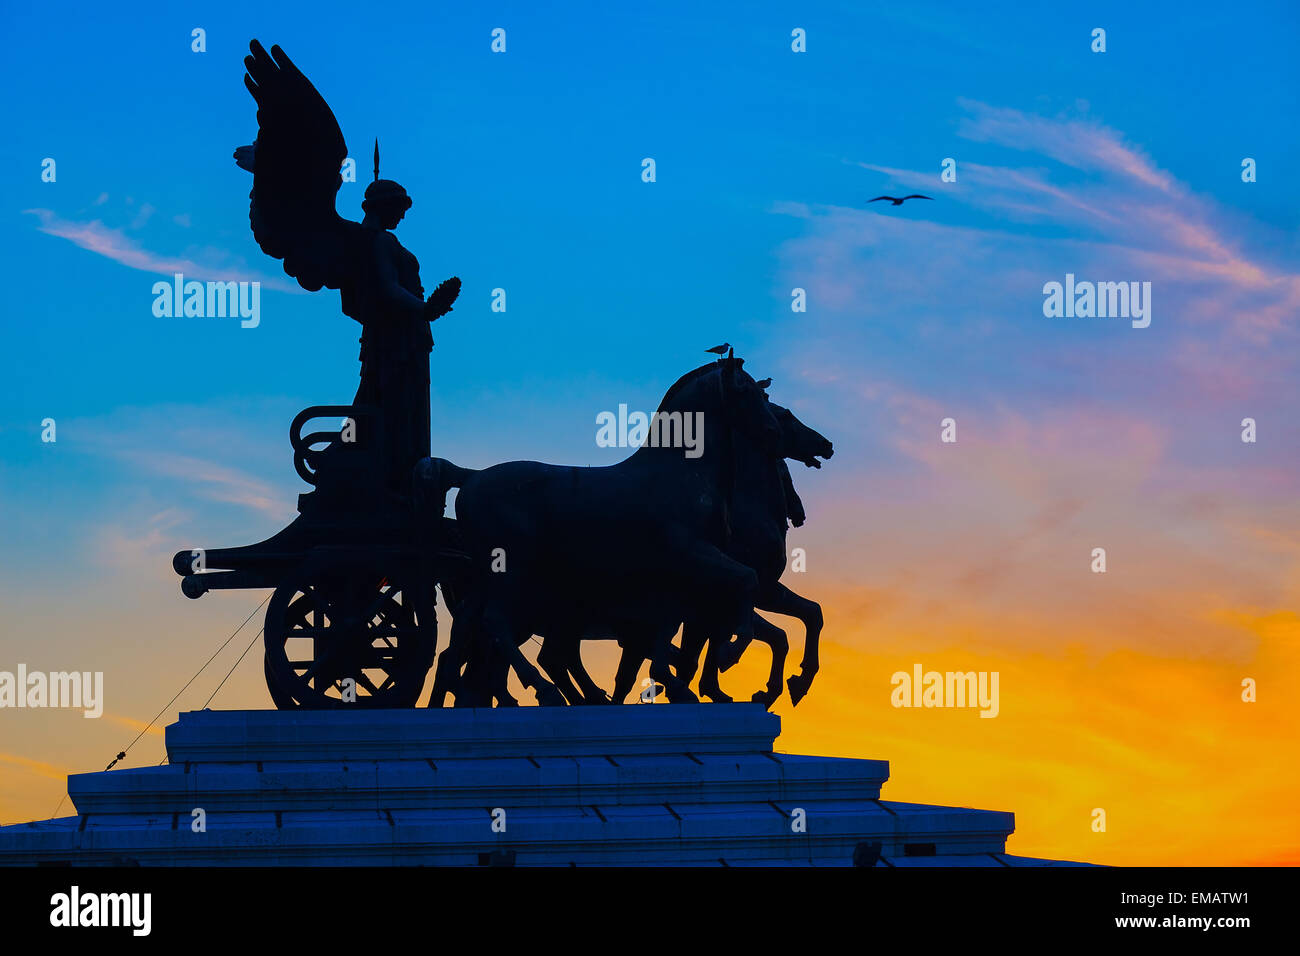 Goddess Victoria riding on quadriga, Rome - Stock Image